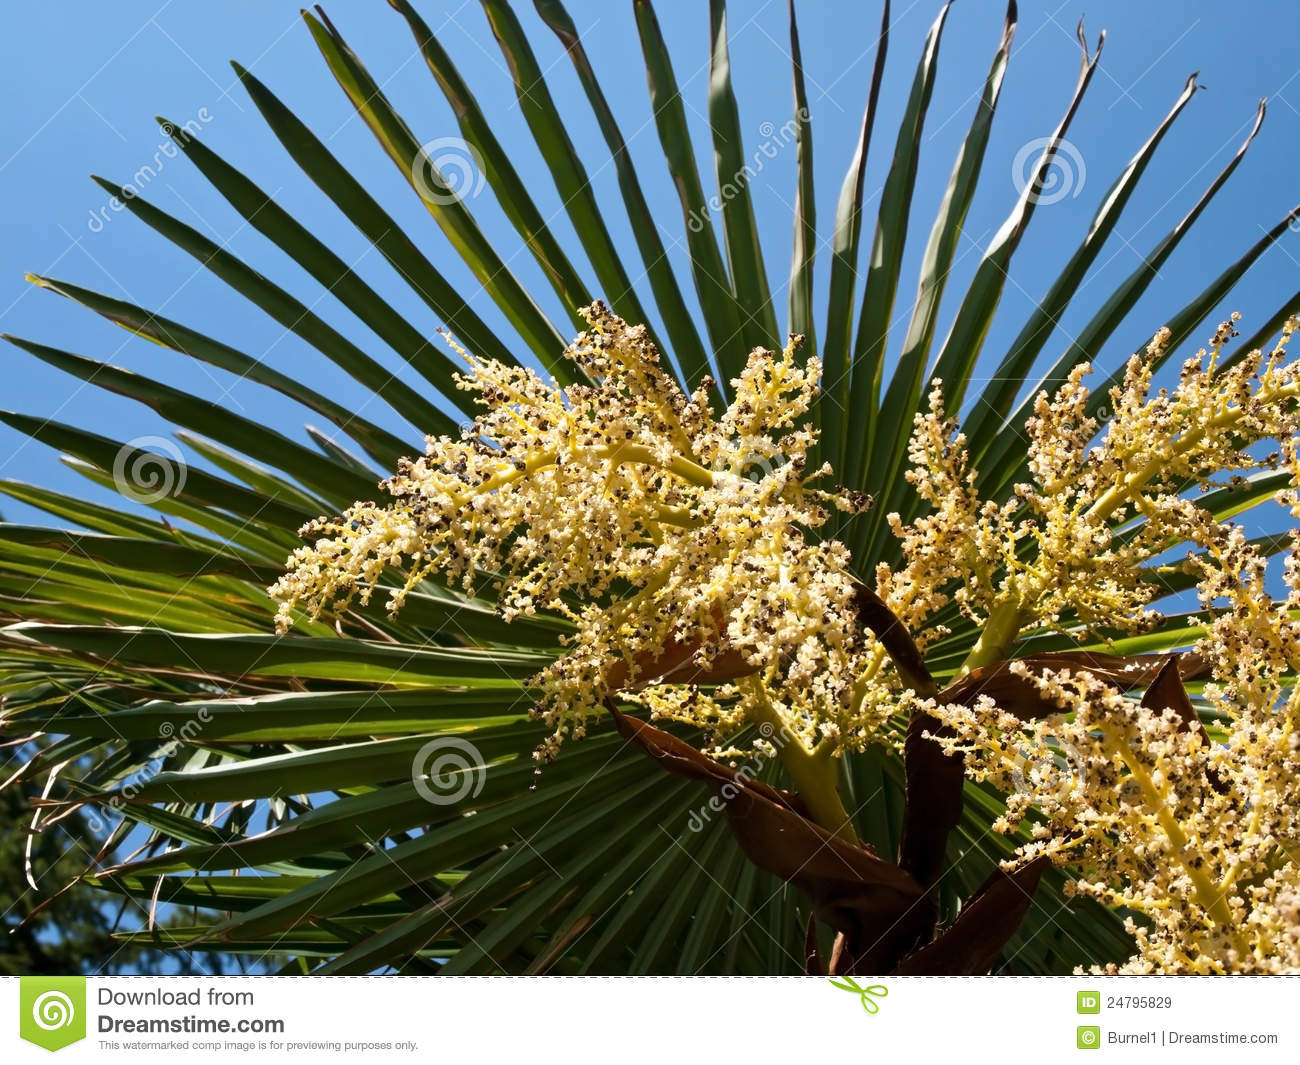 palm tree flowers royalty free stock images image 24795829. Black Bedroom Furniture Sets. Home Design Ideas